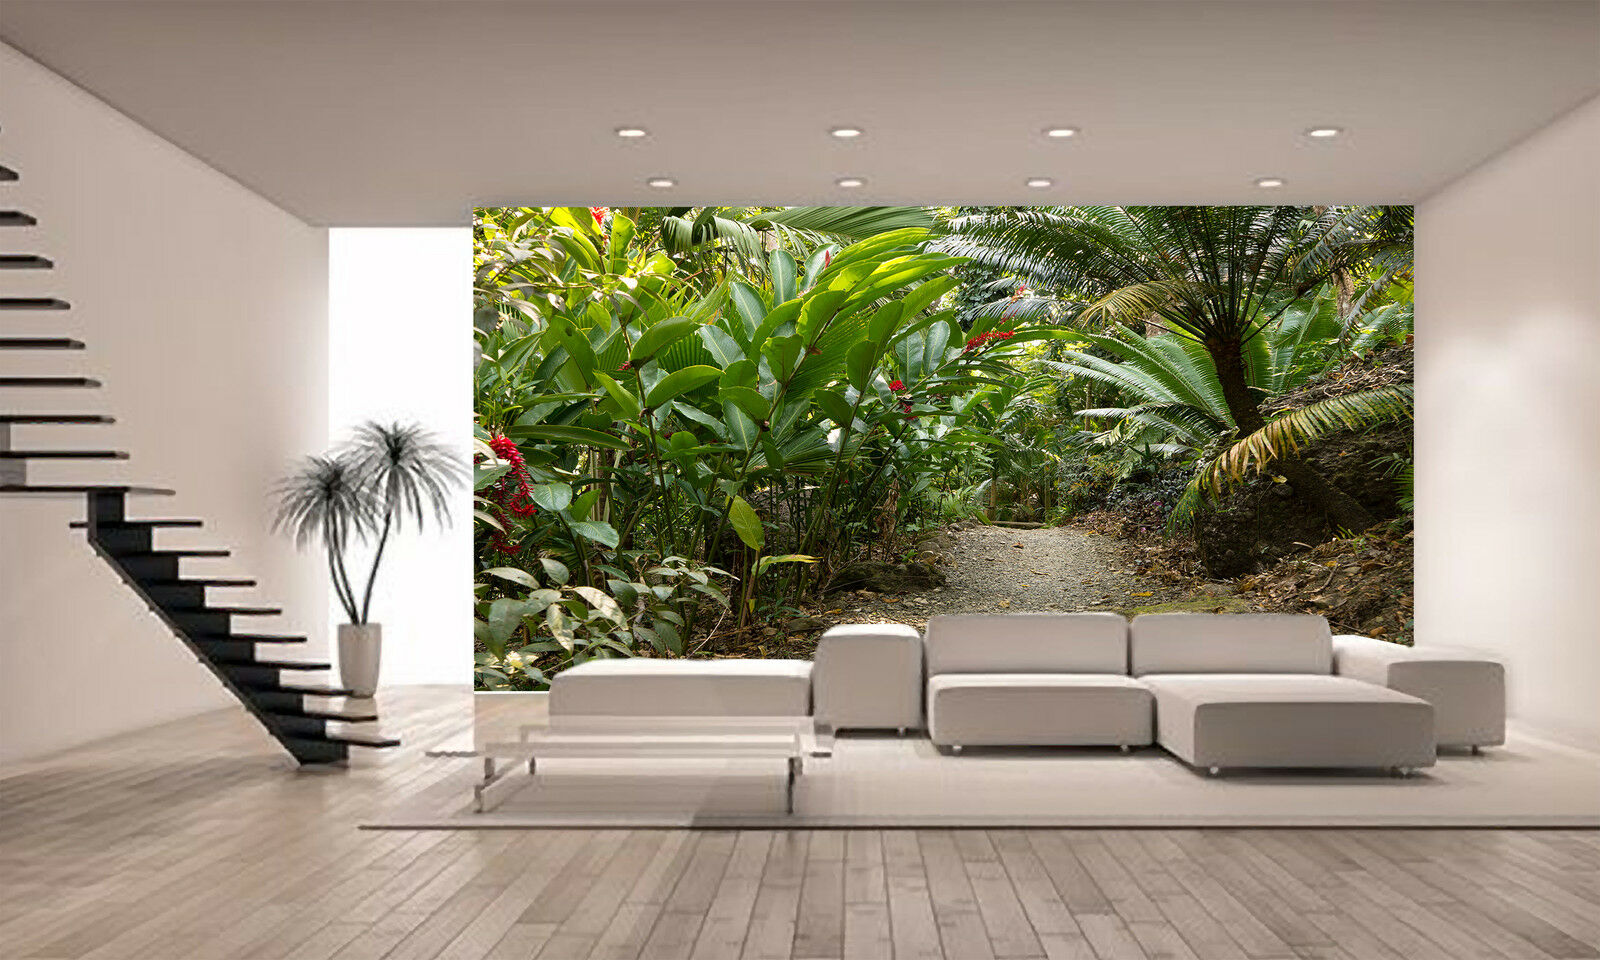 Pathway Through Jungle Wall Mural Photo Wallpaper GIANT DECOR Paper Poster